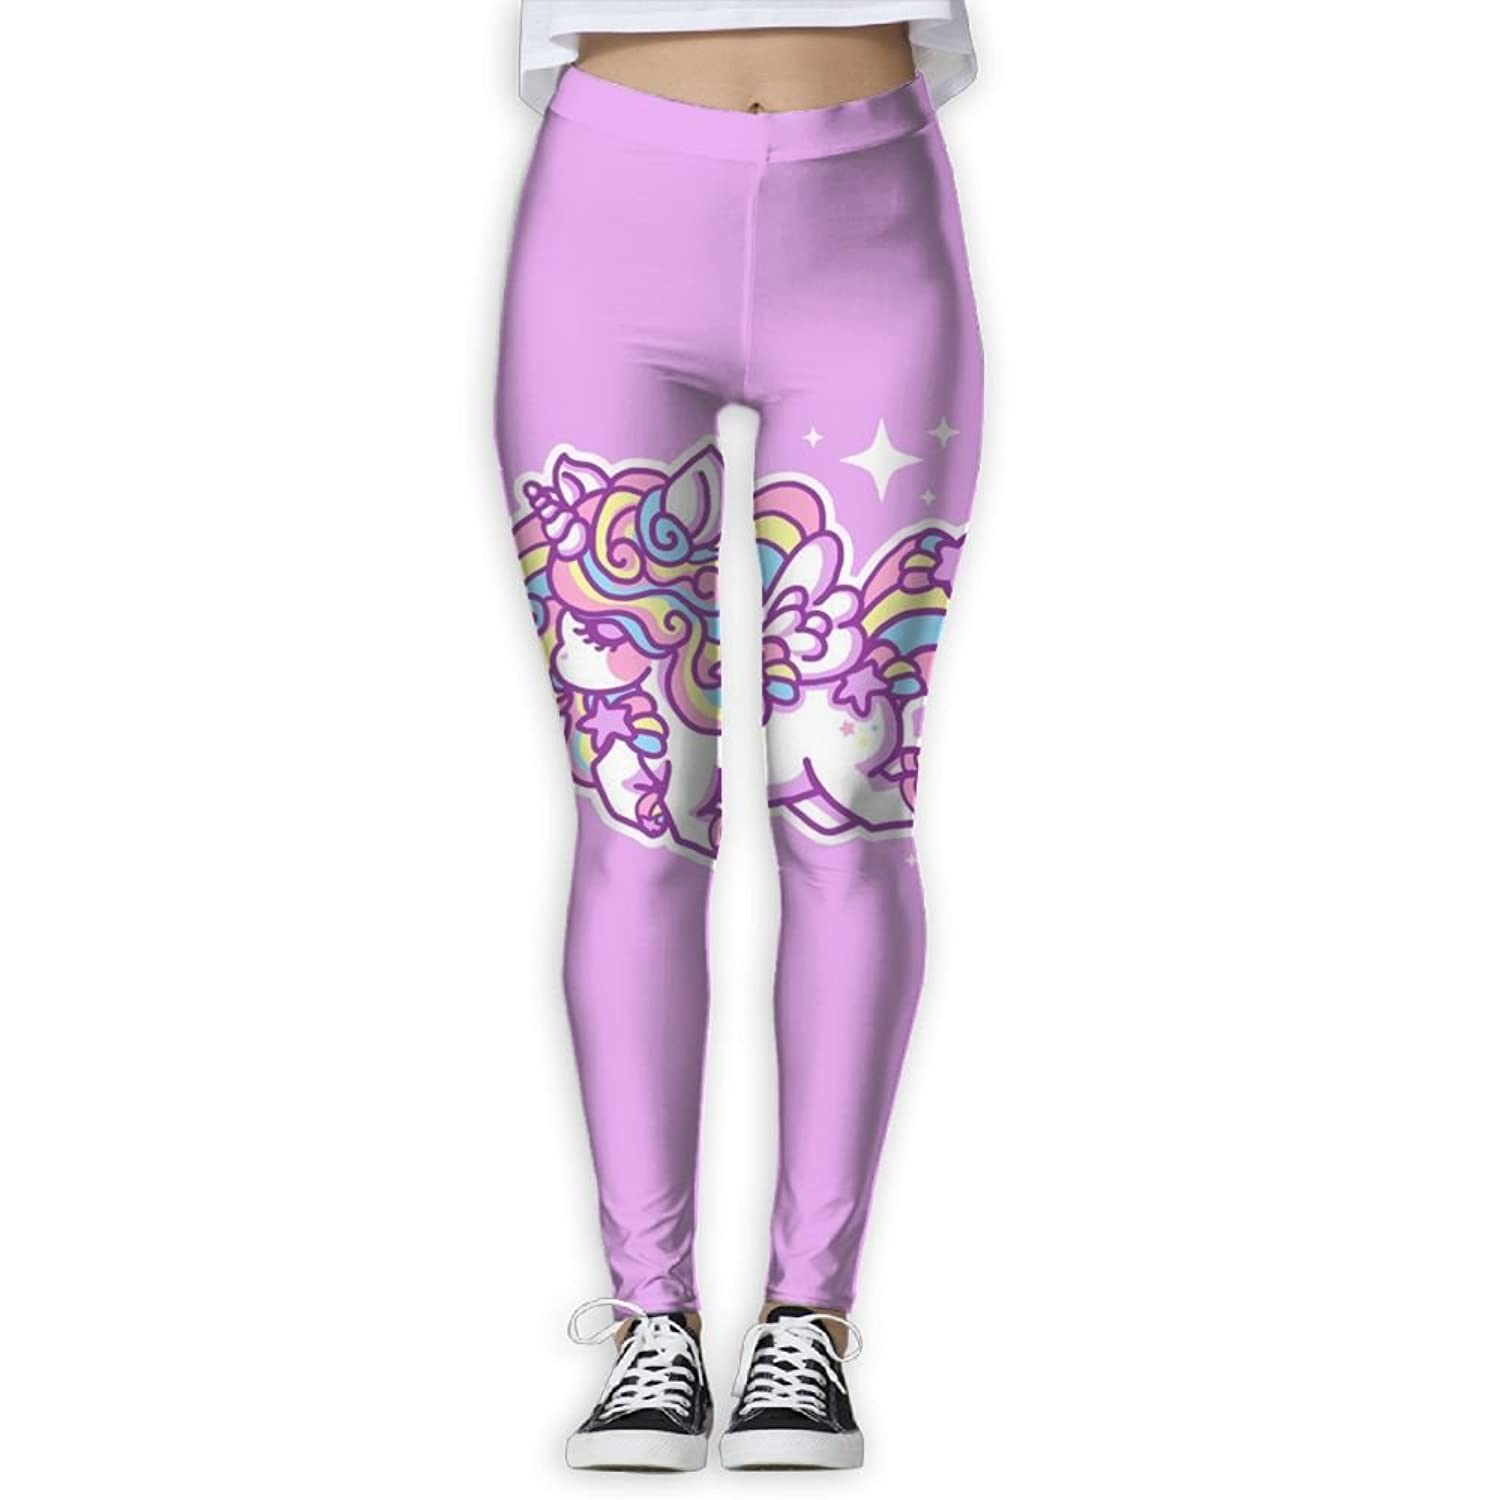 4a61dbec75bdb BabylLave Cute Pink Unicorn Women Printed Full-Length Yoga Workout Leggings  for Running Outdoor Sports